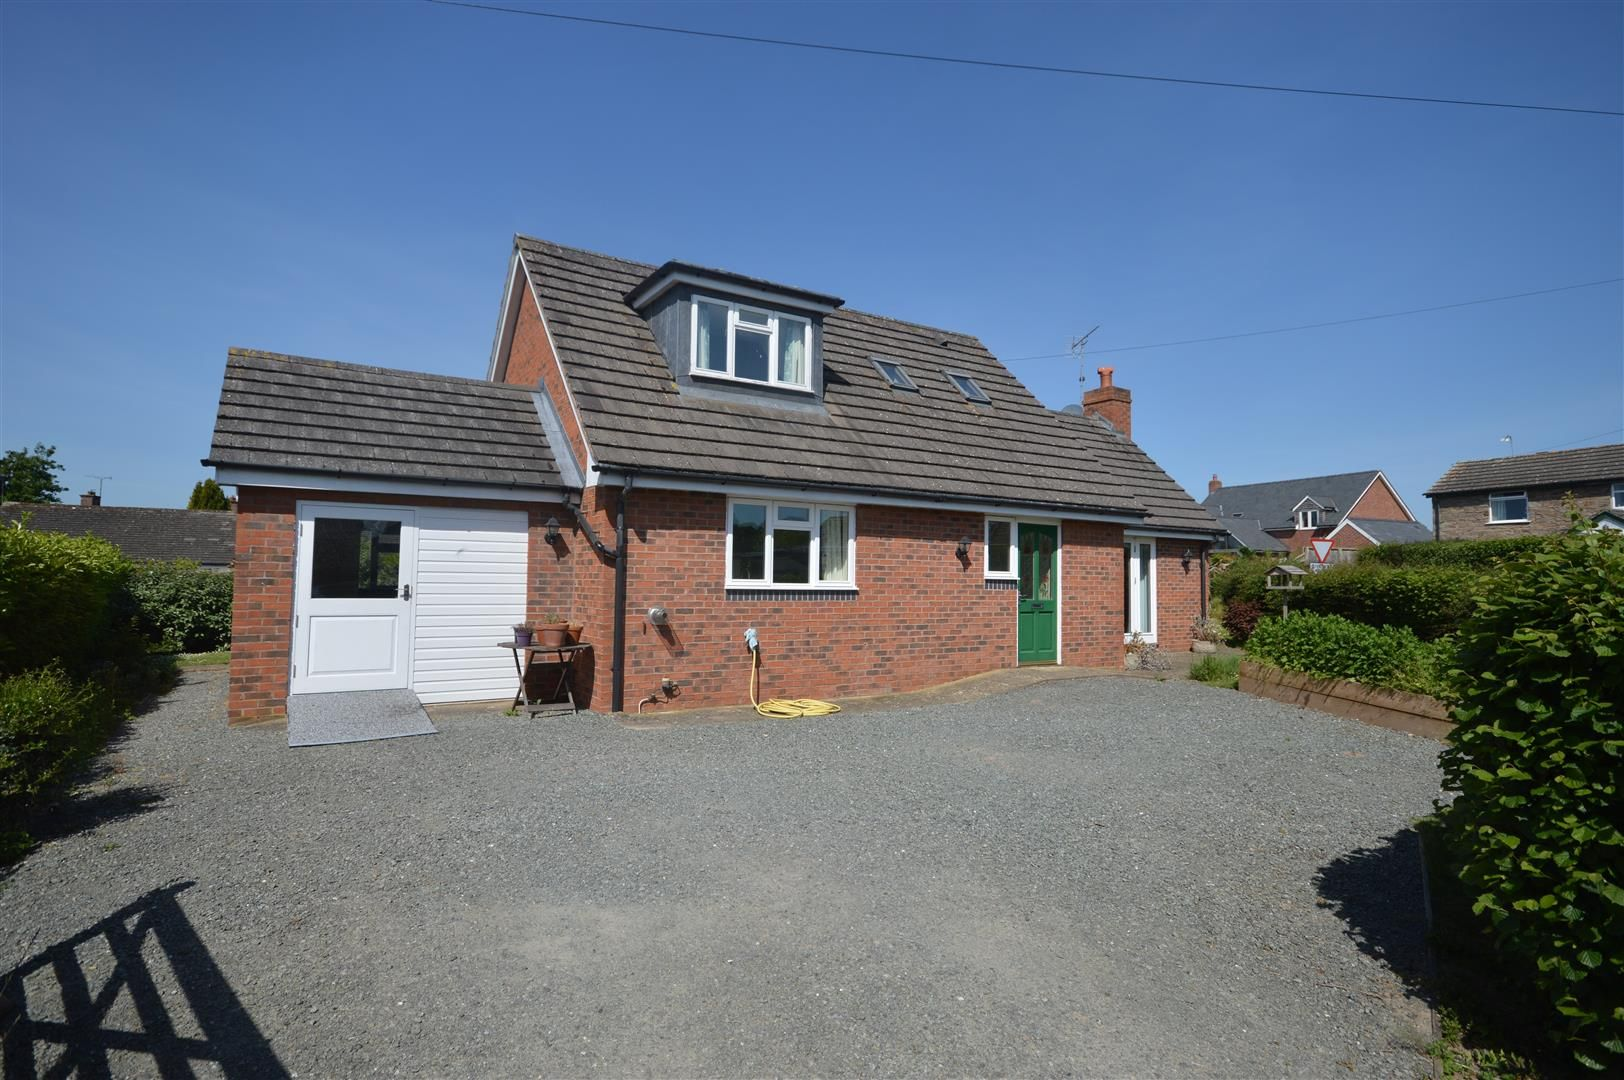 3 bed detached-bungalow for sale in Almeley  - Property Image 1